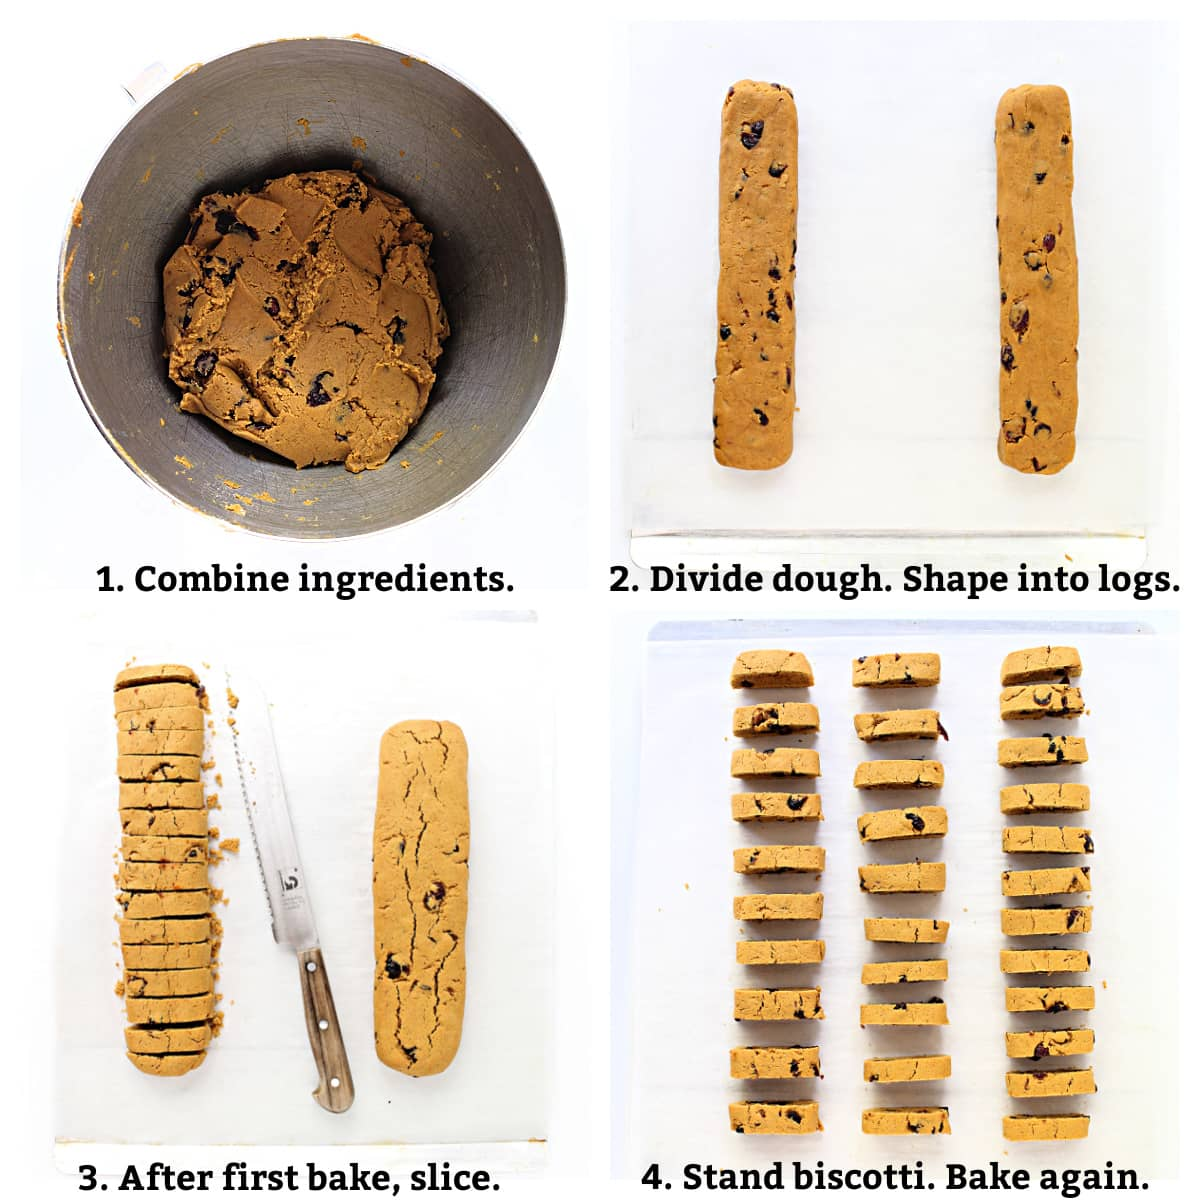 Biscotti instructions; combine ingredients, form two dough logs, bake then slice, bake slices again.